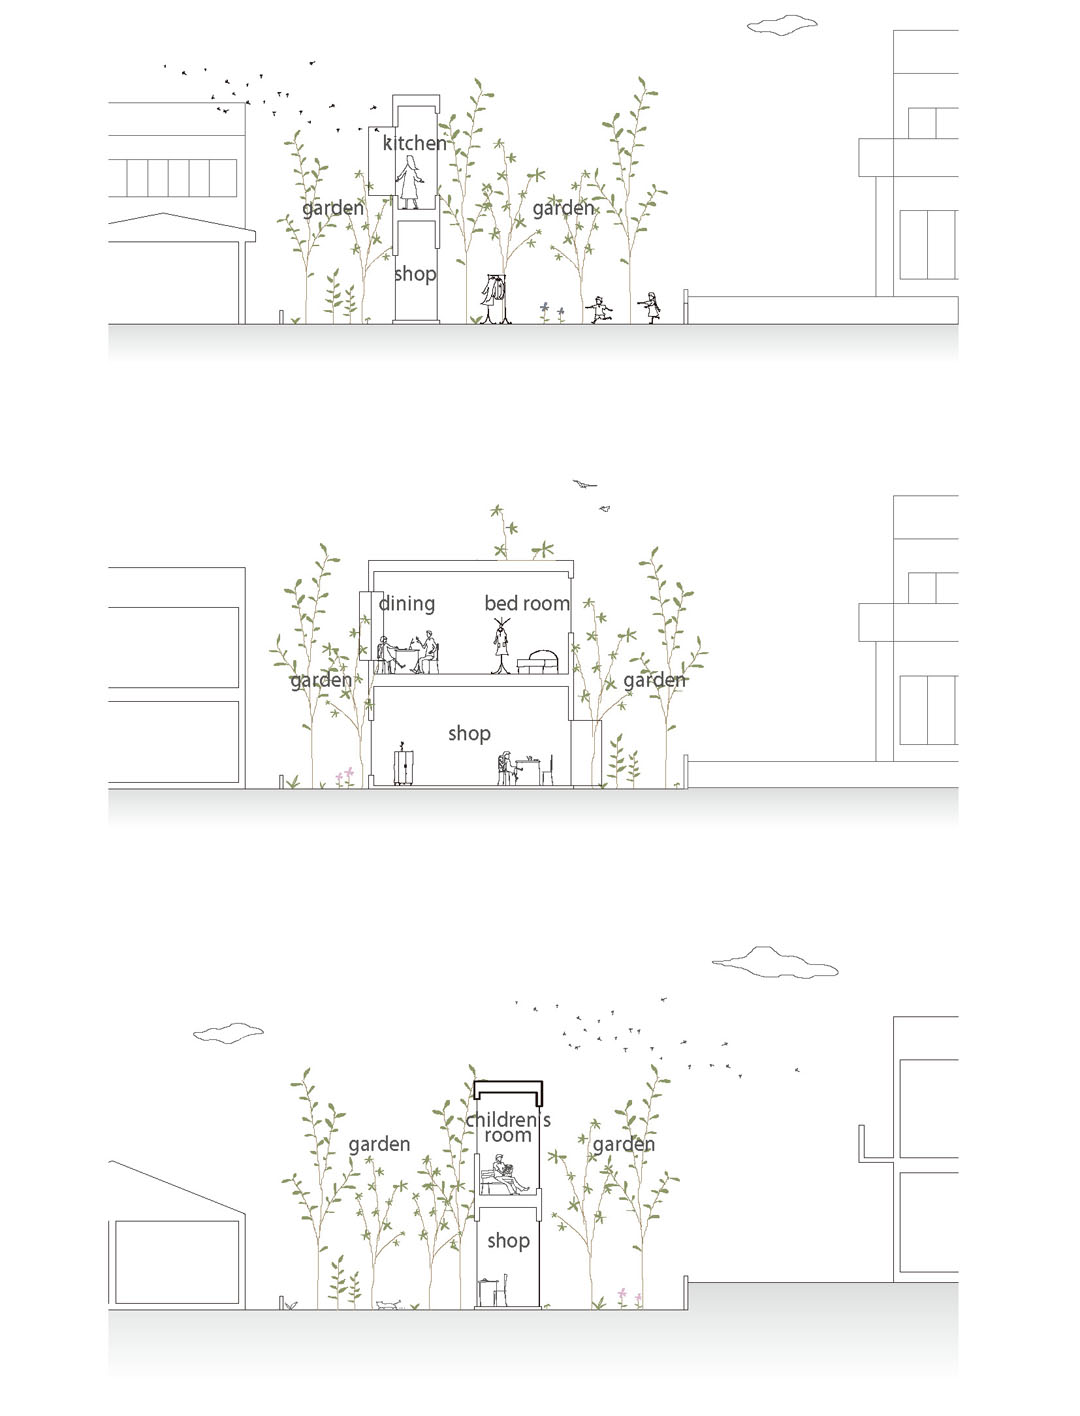 Forest House in the City / Studio Velocity第10张图片